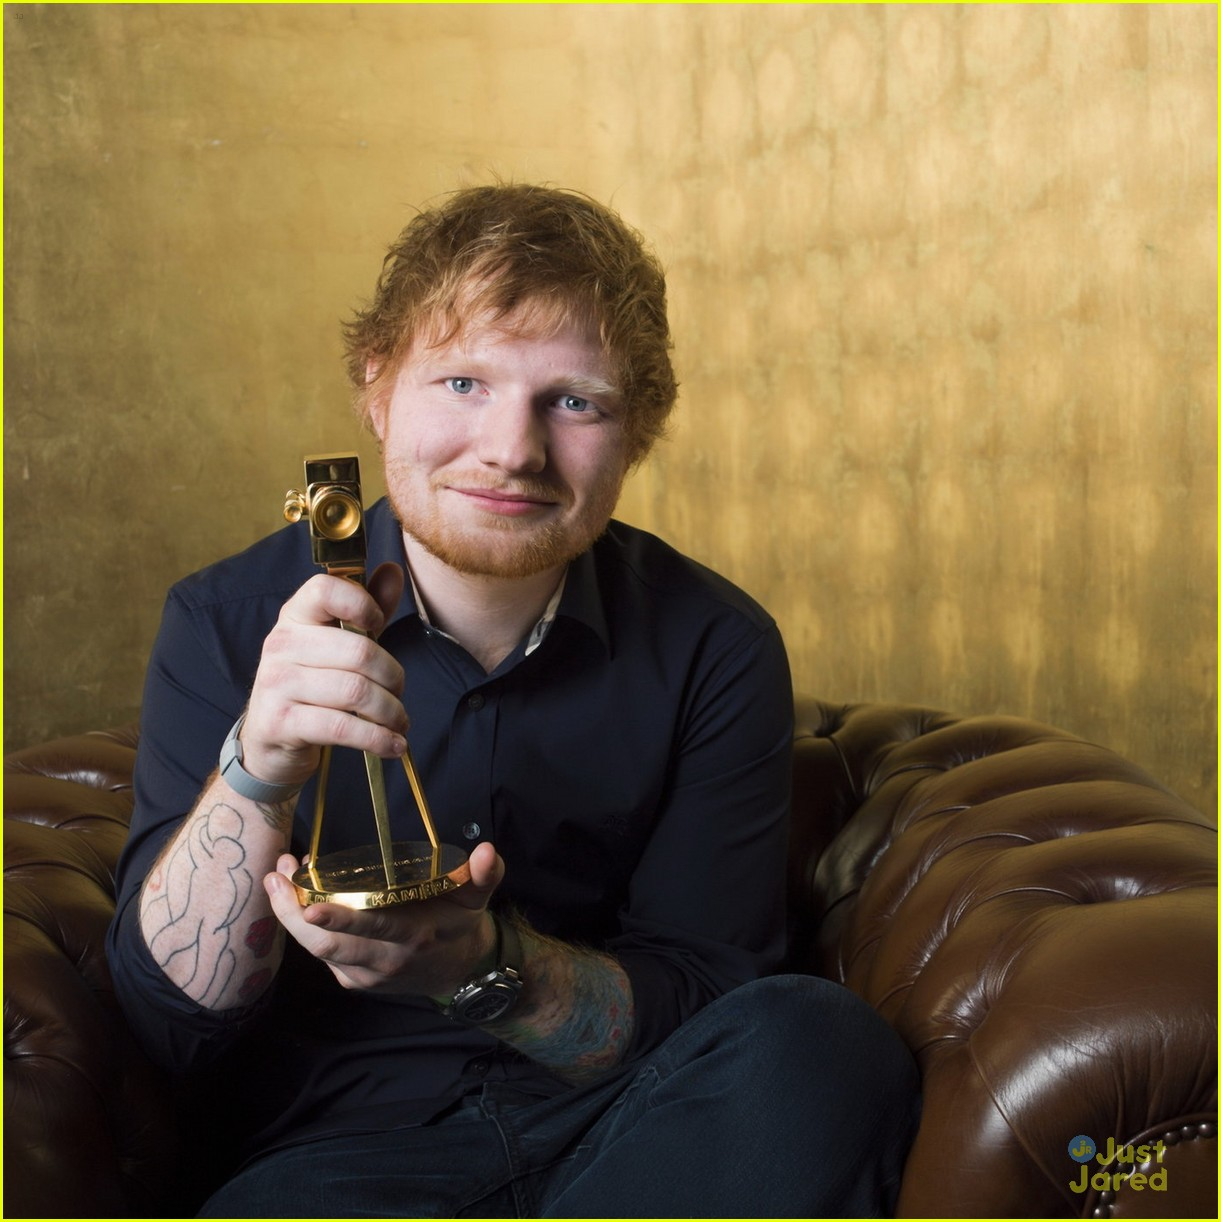 ed sheeran spotify records broke divide 05